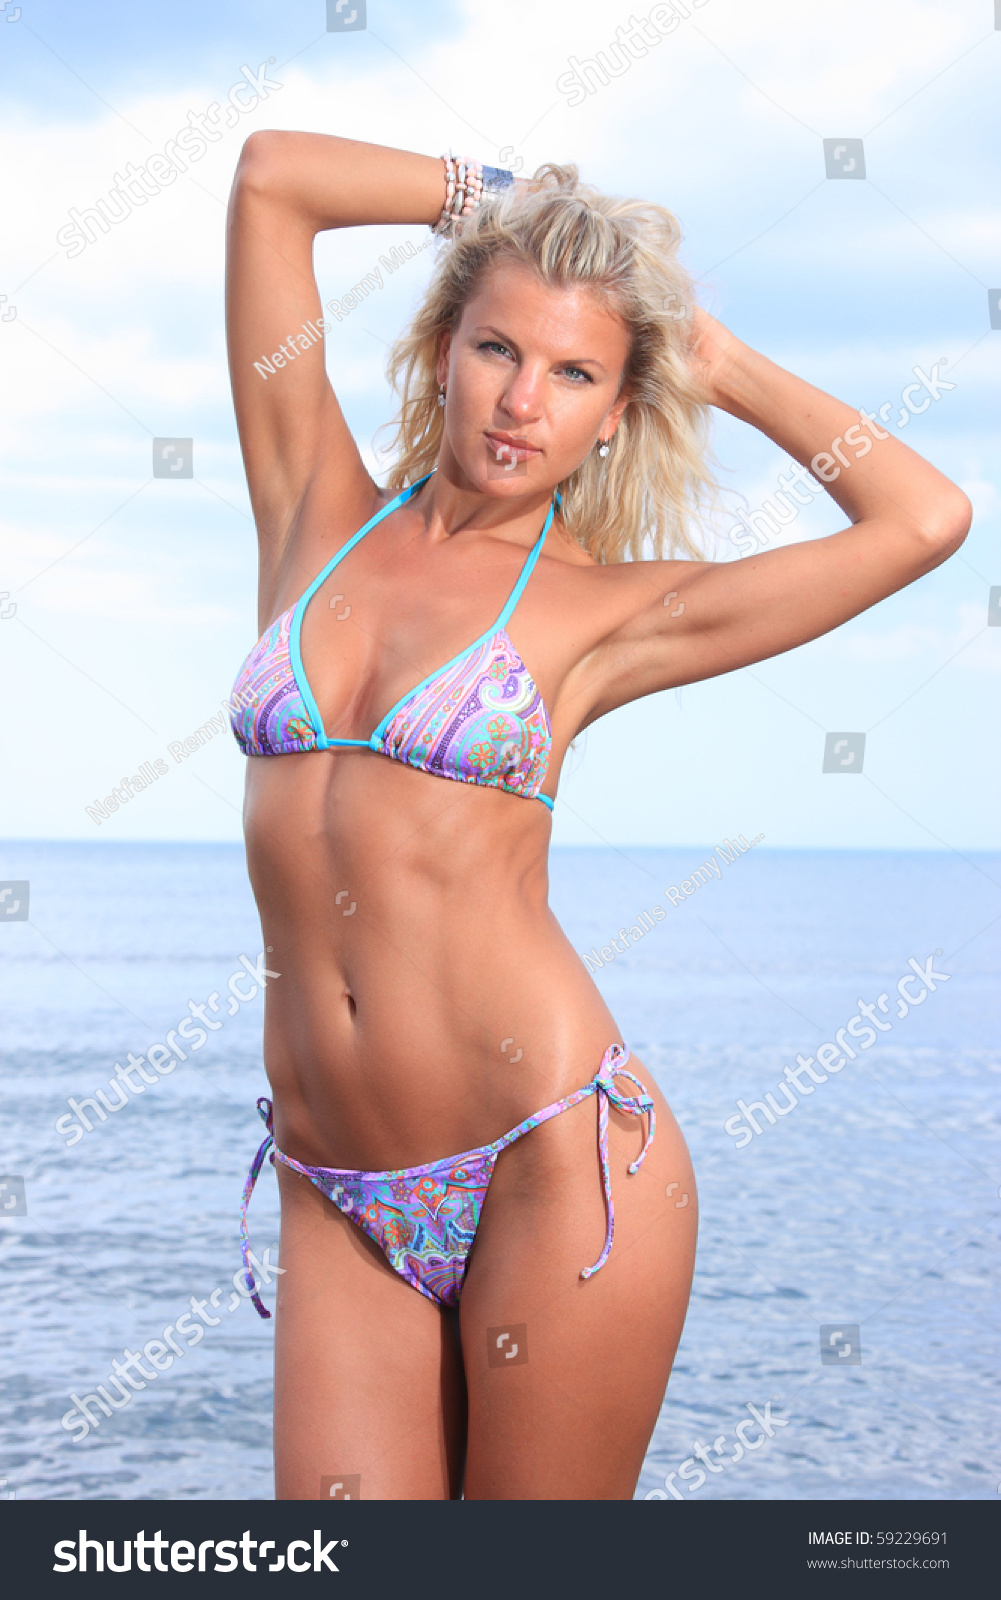 The guy Bikini in russian woman Love